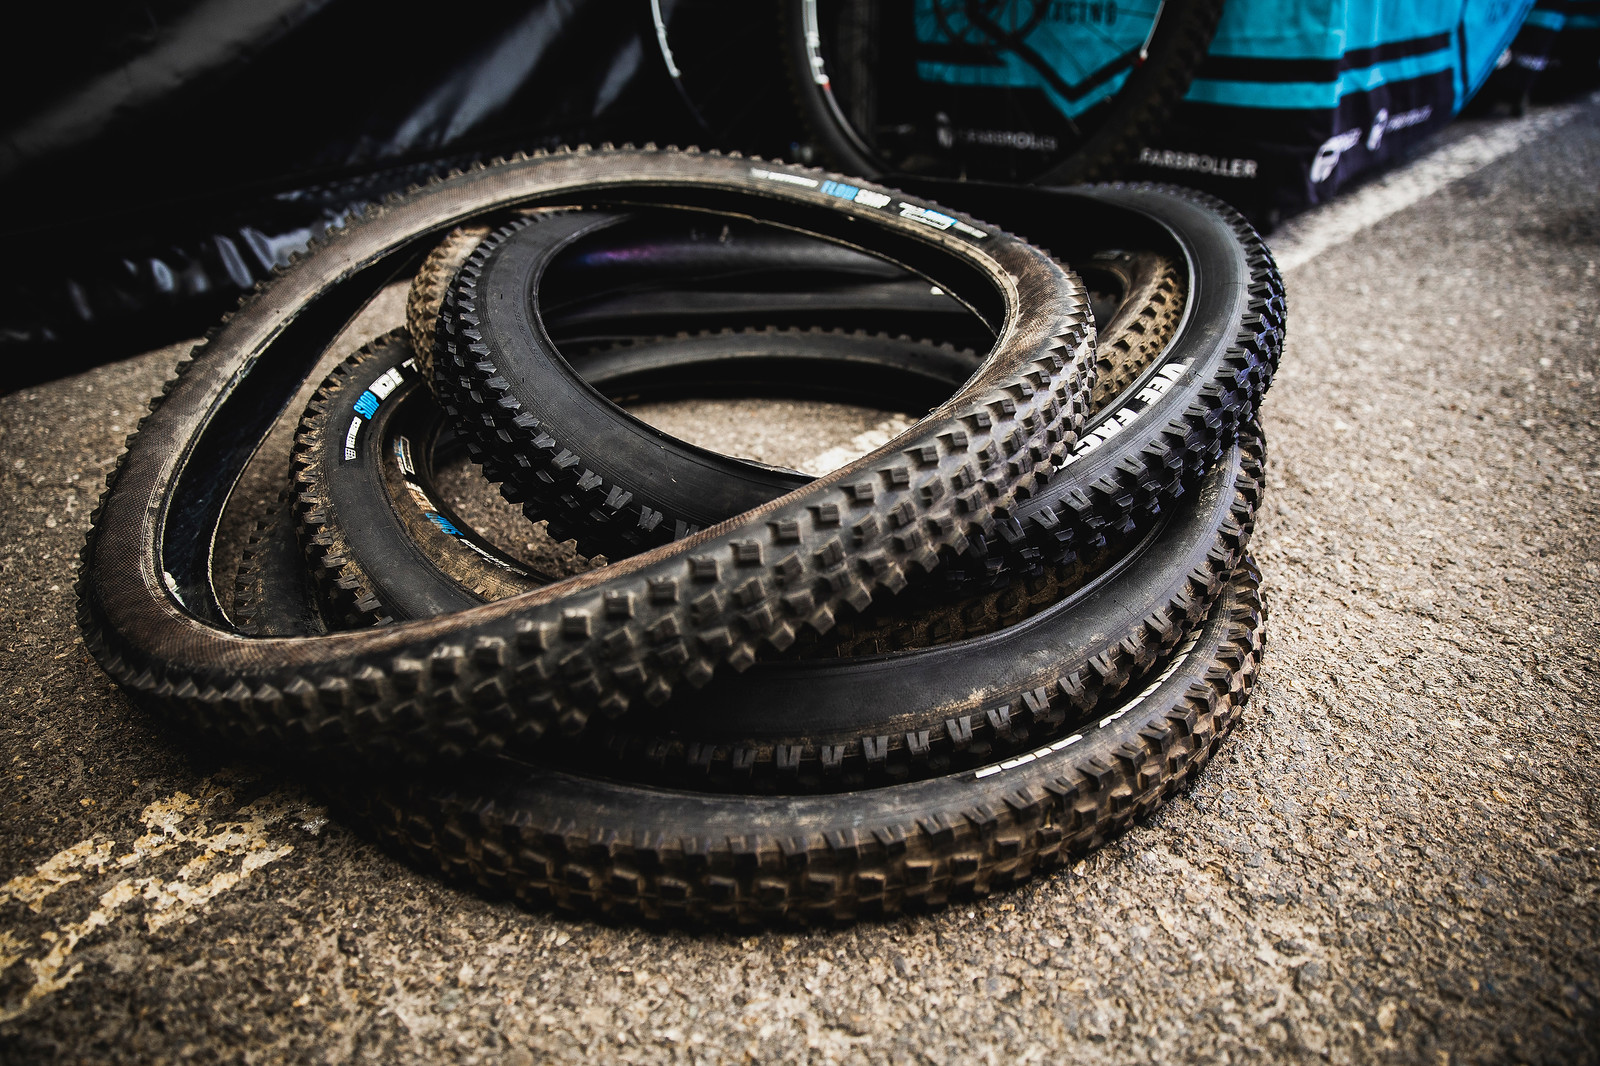 Vee Snap WCE Tires at Propain - PIT BITS - 2019 Les Gets World Cup DH, France - Mountain Biking Pictures - Vital MTB